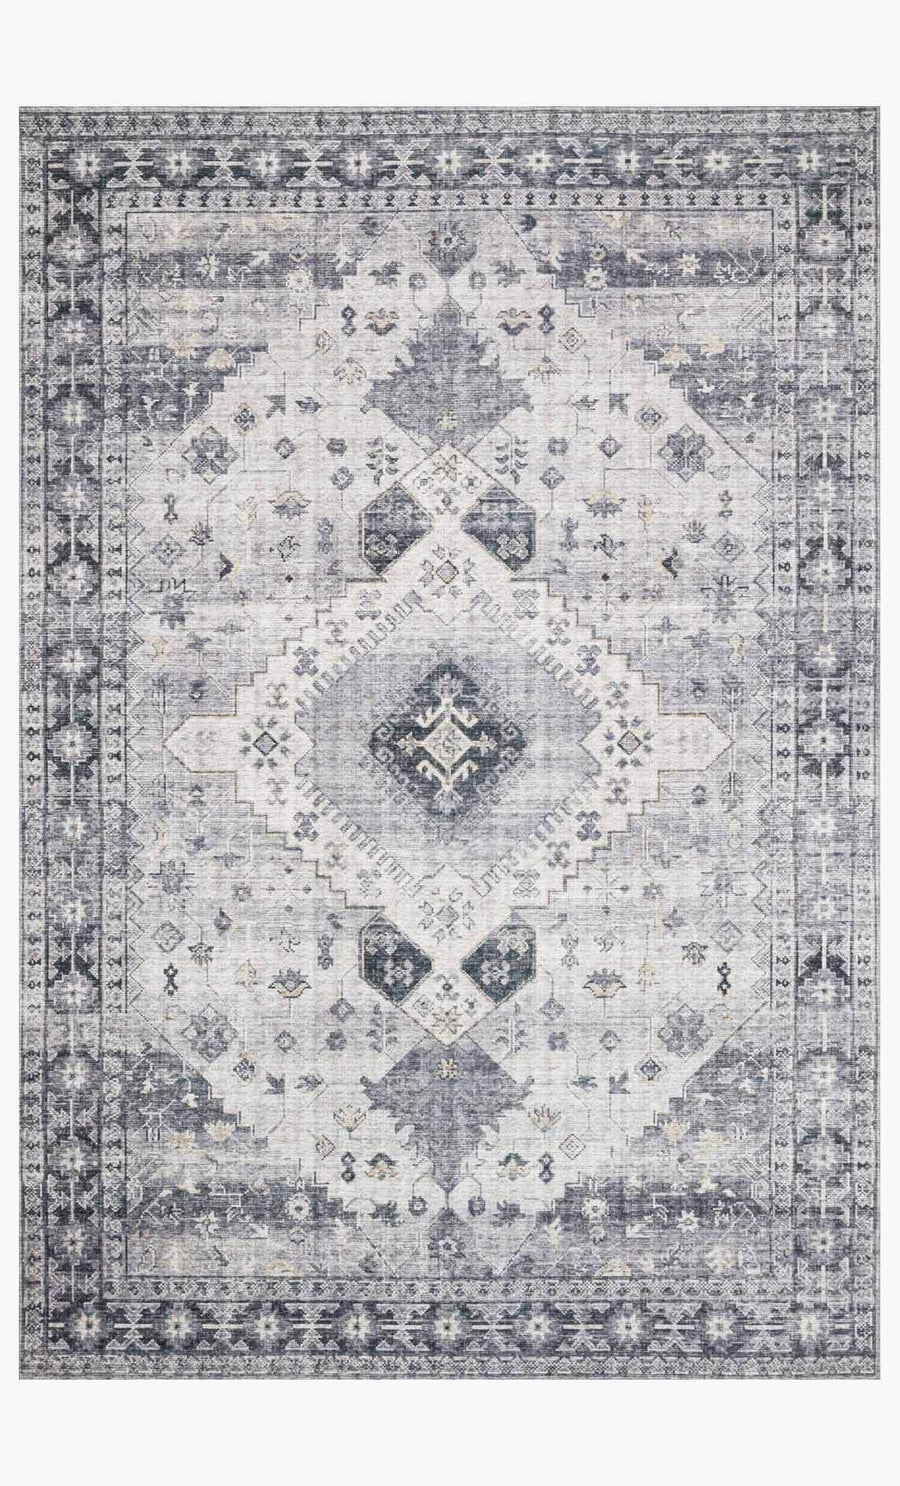 Silver and grey vintage inspired rug with cream accents.